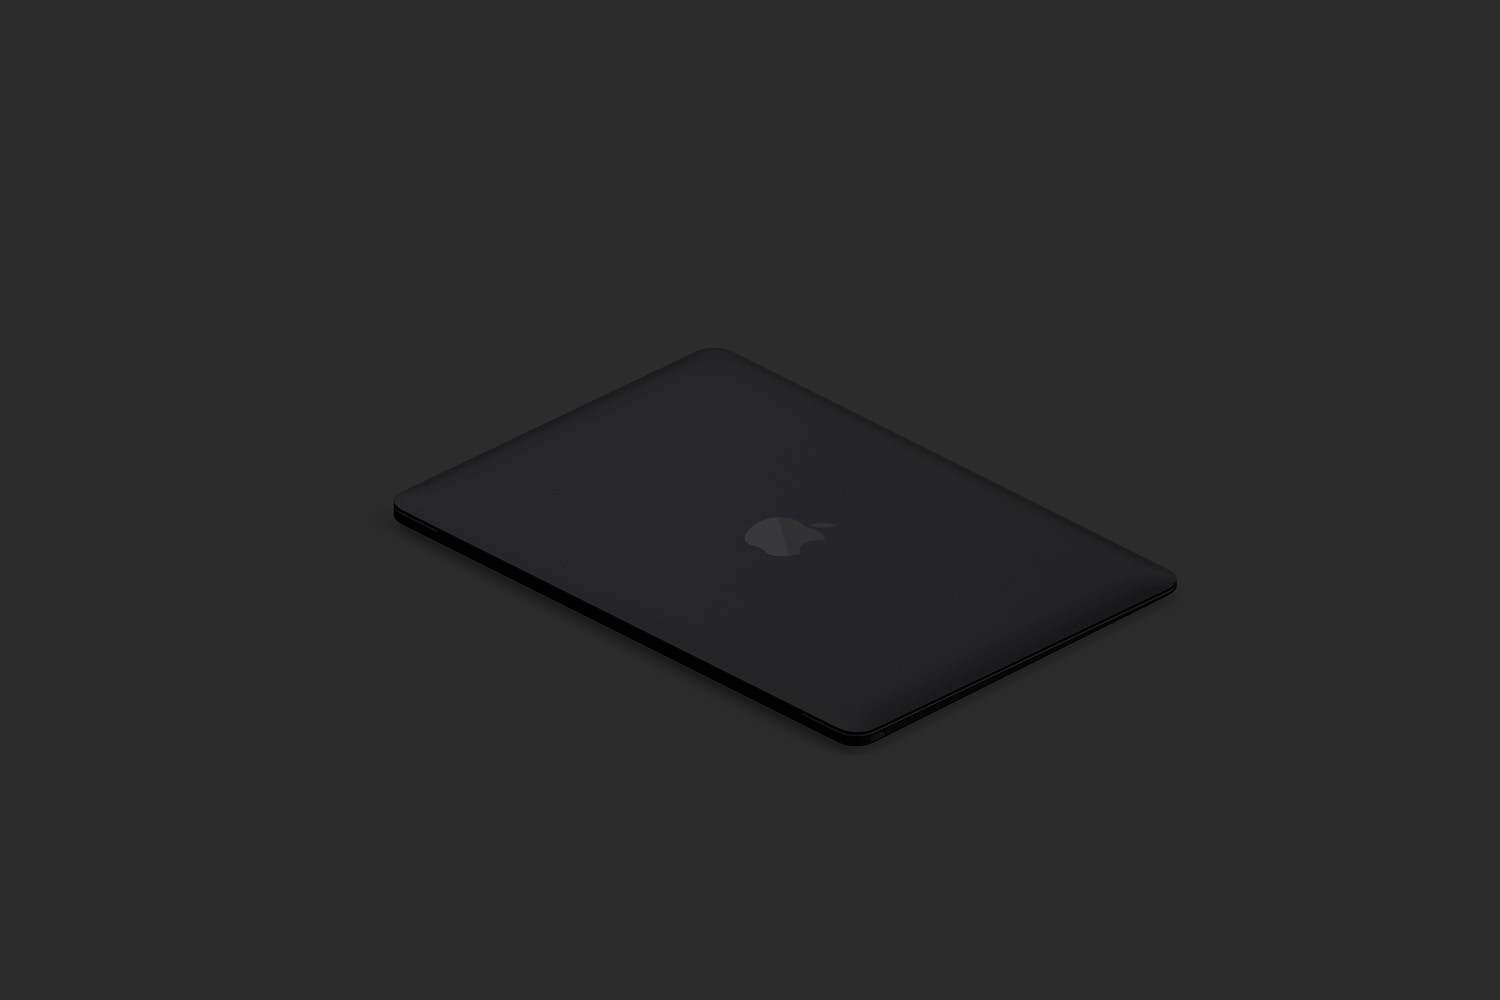 Clay MacBook Mockup, Isometric Right View 03 (5) by Original Mockups on Original Mockups